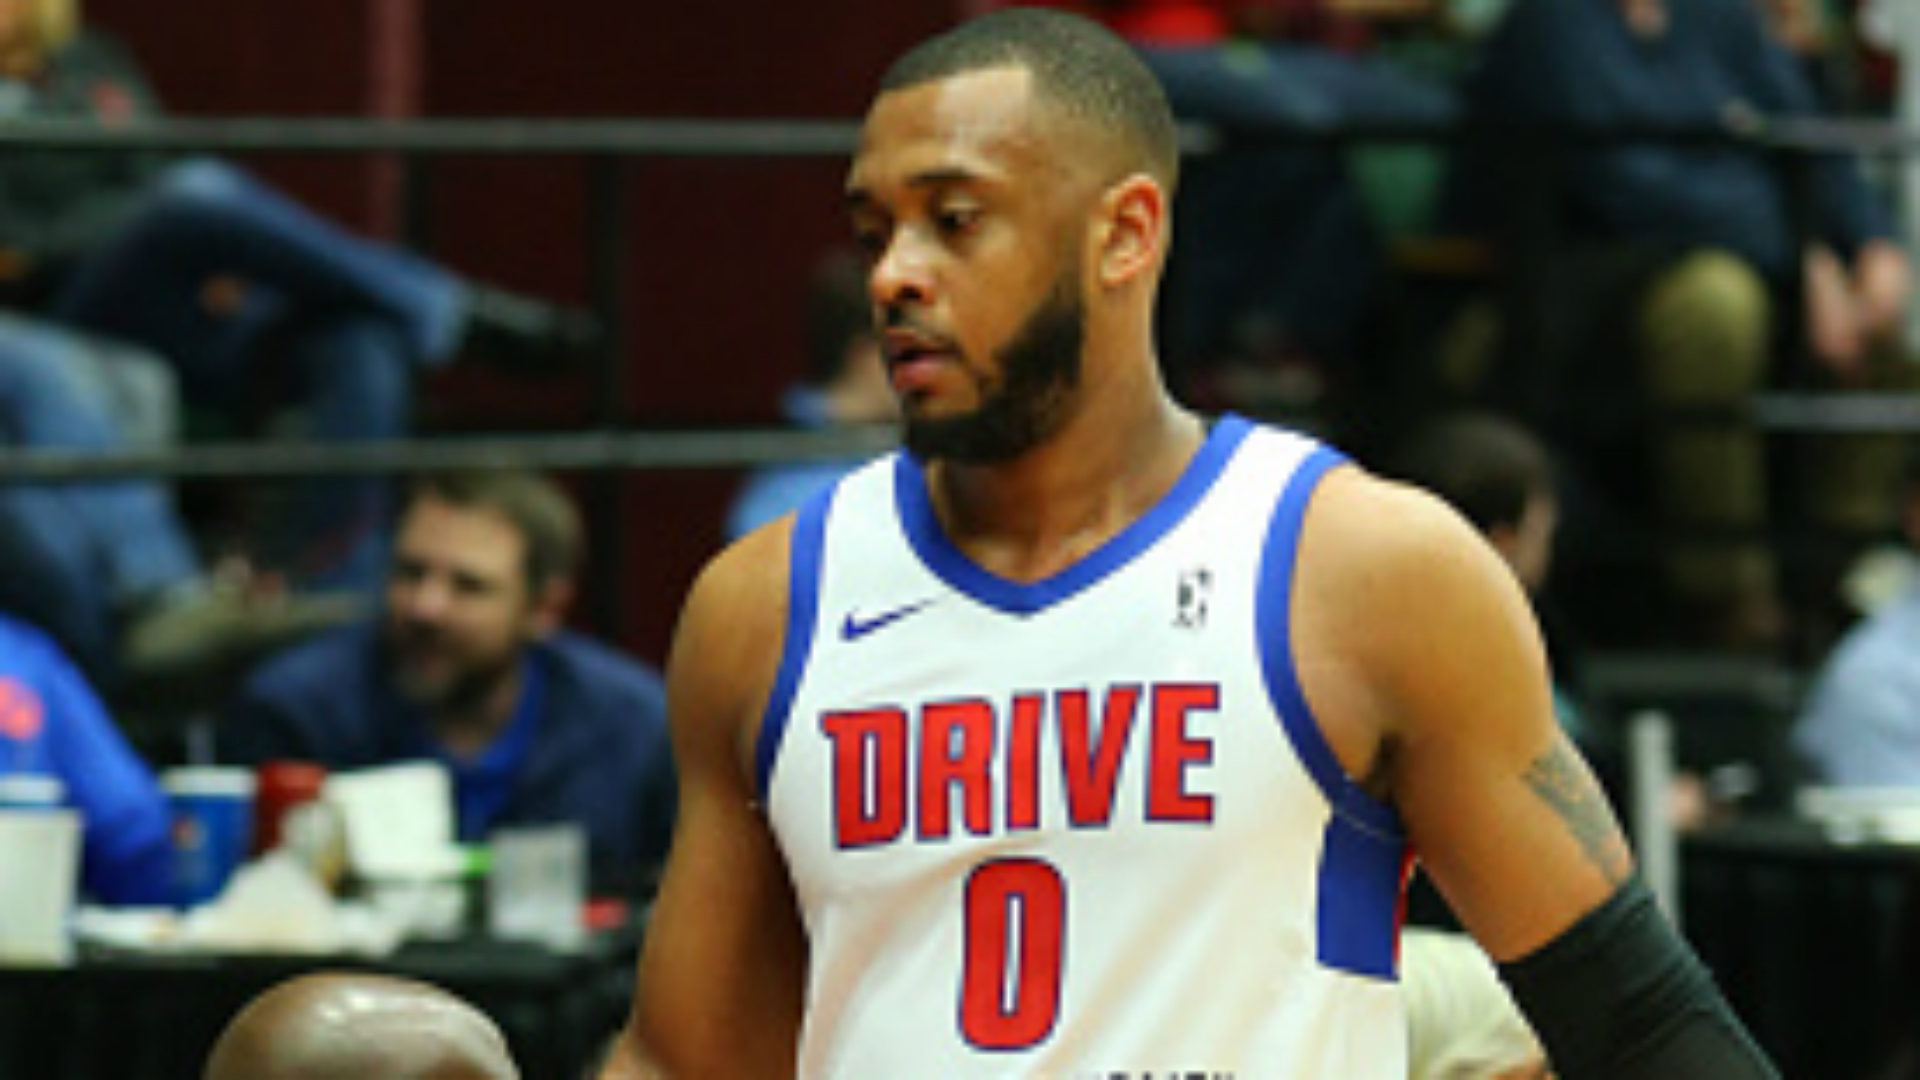 Grand Rapids Drive player Zeke Upshaw suffered 'sudden cardiac death'